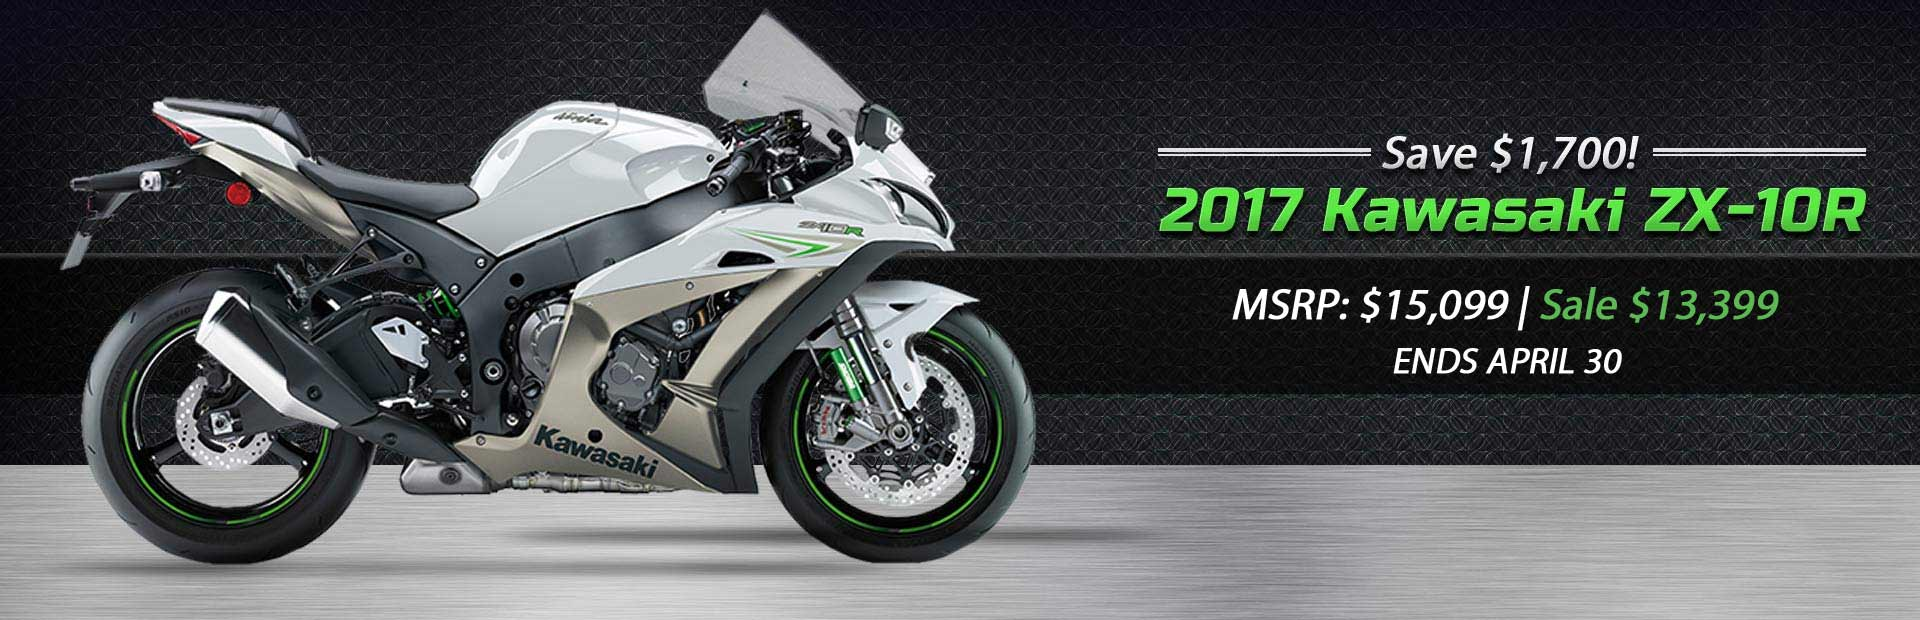 Save $1,700 on the 2017 Kawasaki ZX-10R